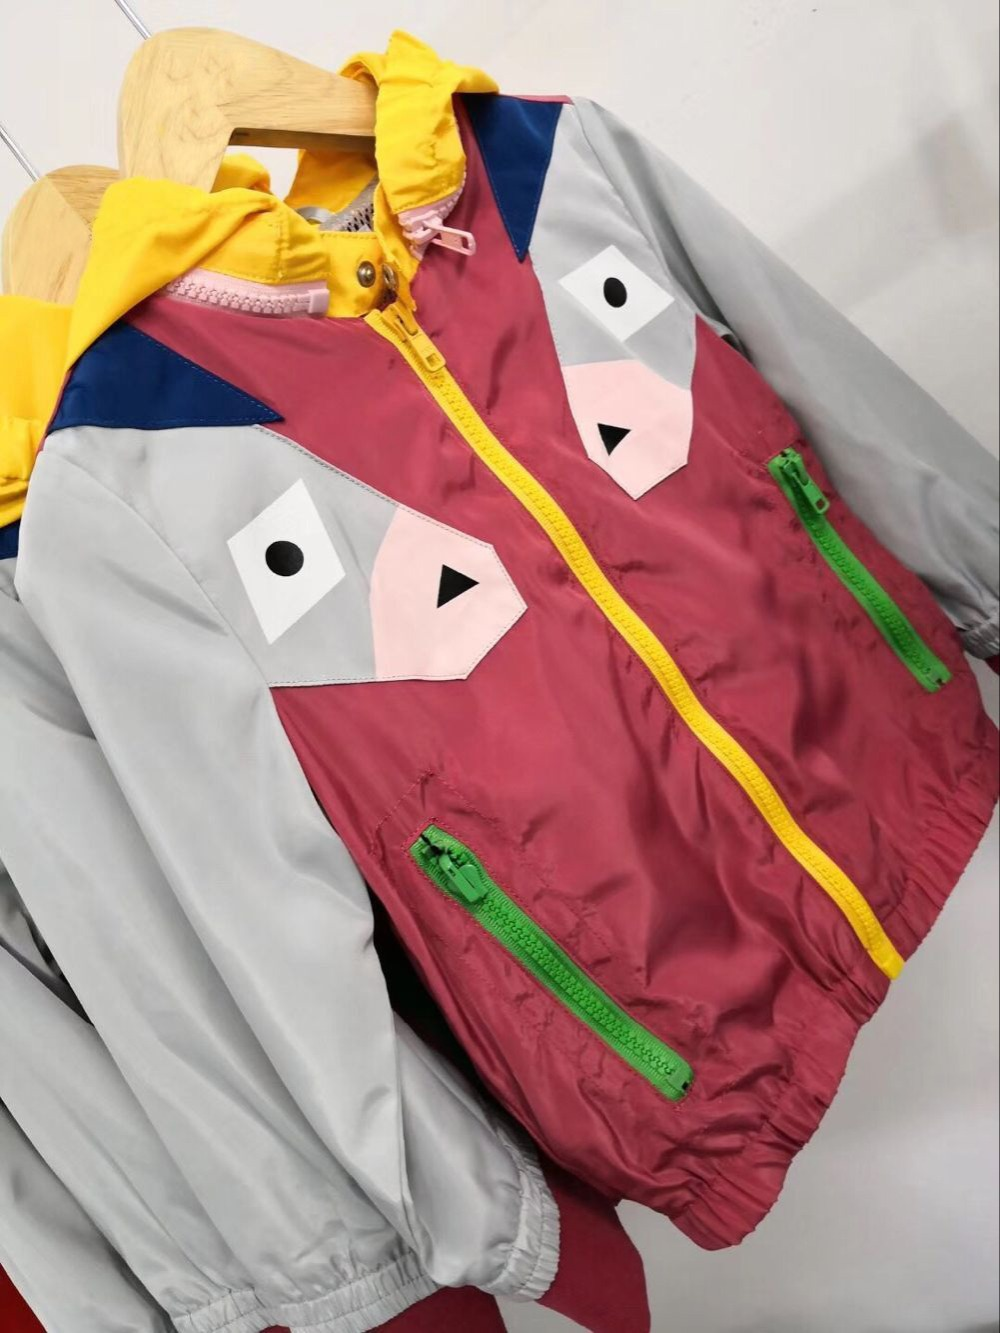 Children Hooded Jackets For Boys Girls Outerwear Hoodie Baby Jacket Windbreaker Children's Clothes in stock цены онлайн